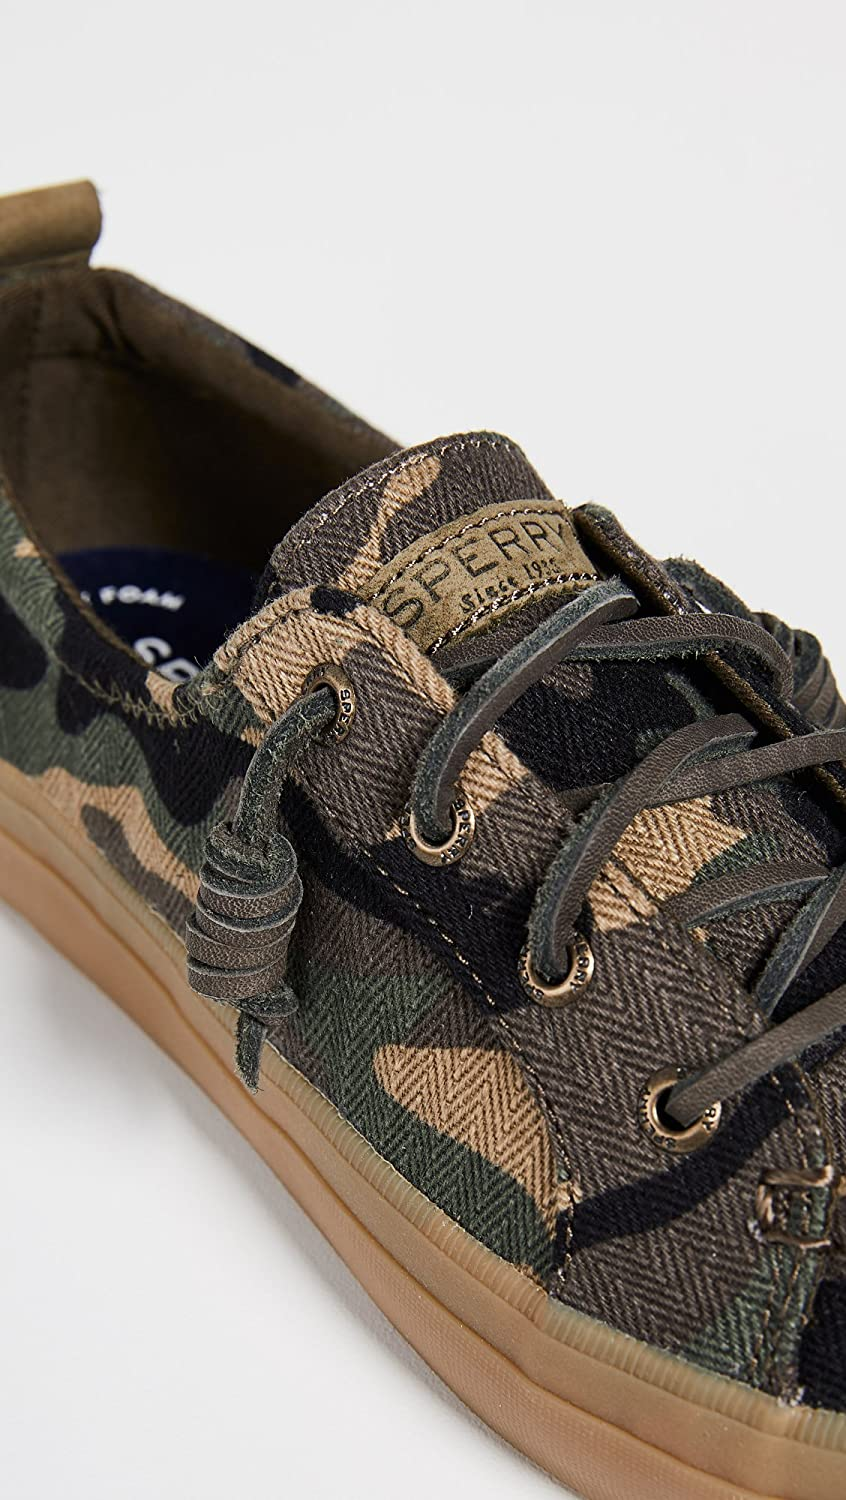 Sperry Women's Crest Vibe Camo Sneakers B07FF2FNM9 6.5 B(M) US Olive